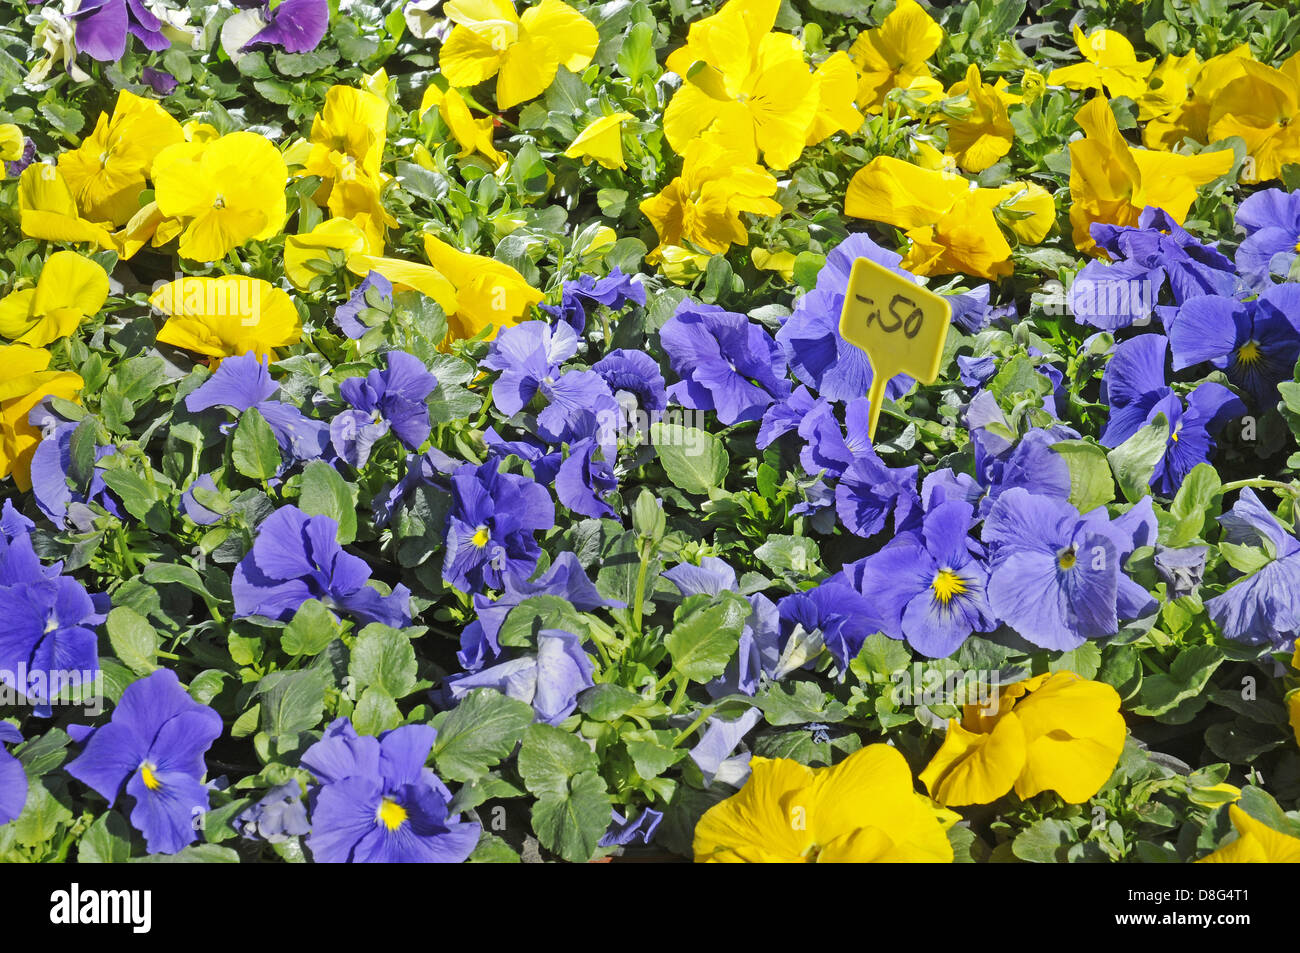 Pansies for sale - Stock Image